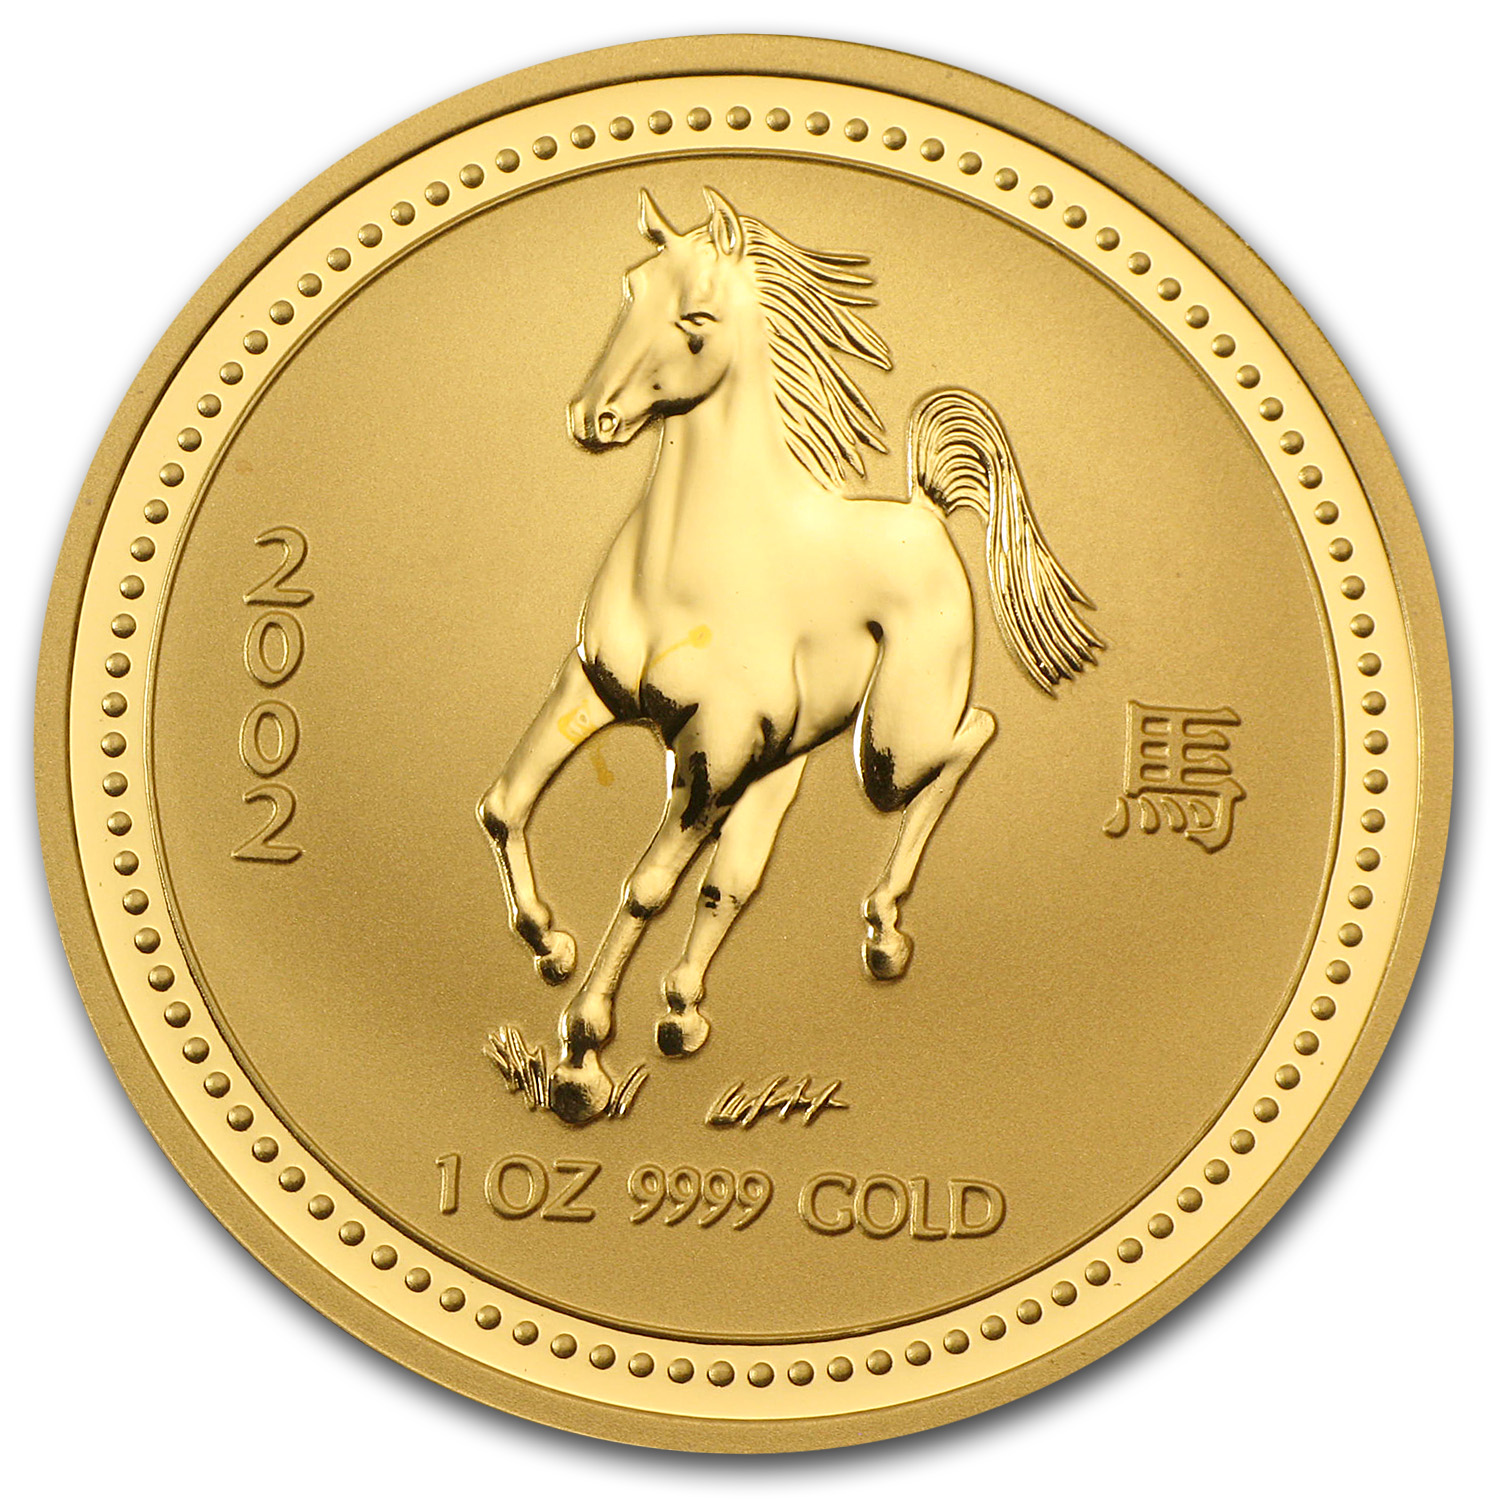 2002 1 oz Gold Lunar Year of the Horse BU (Series I)